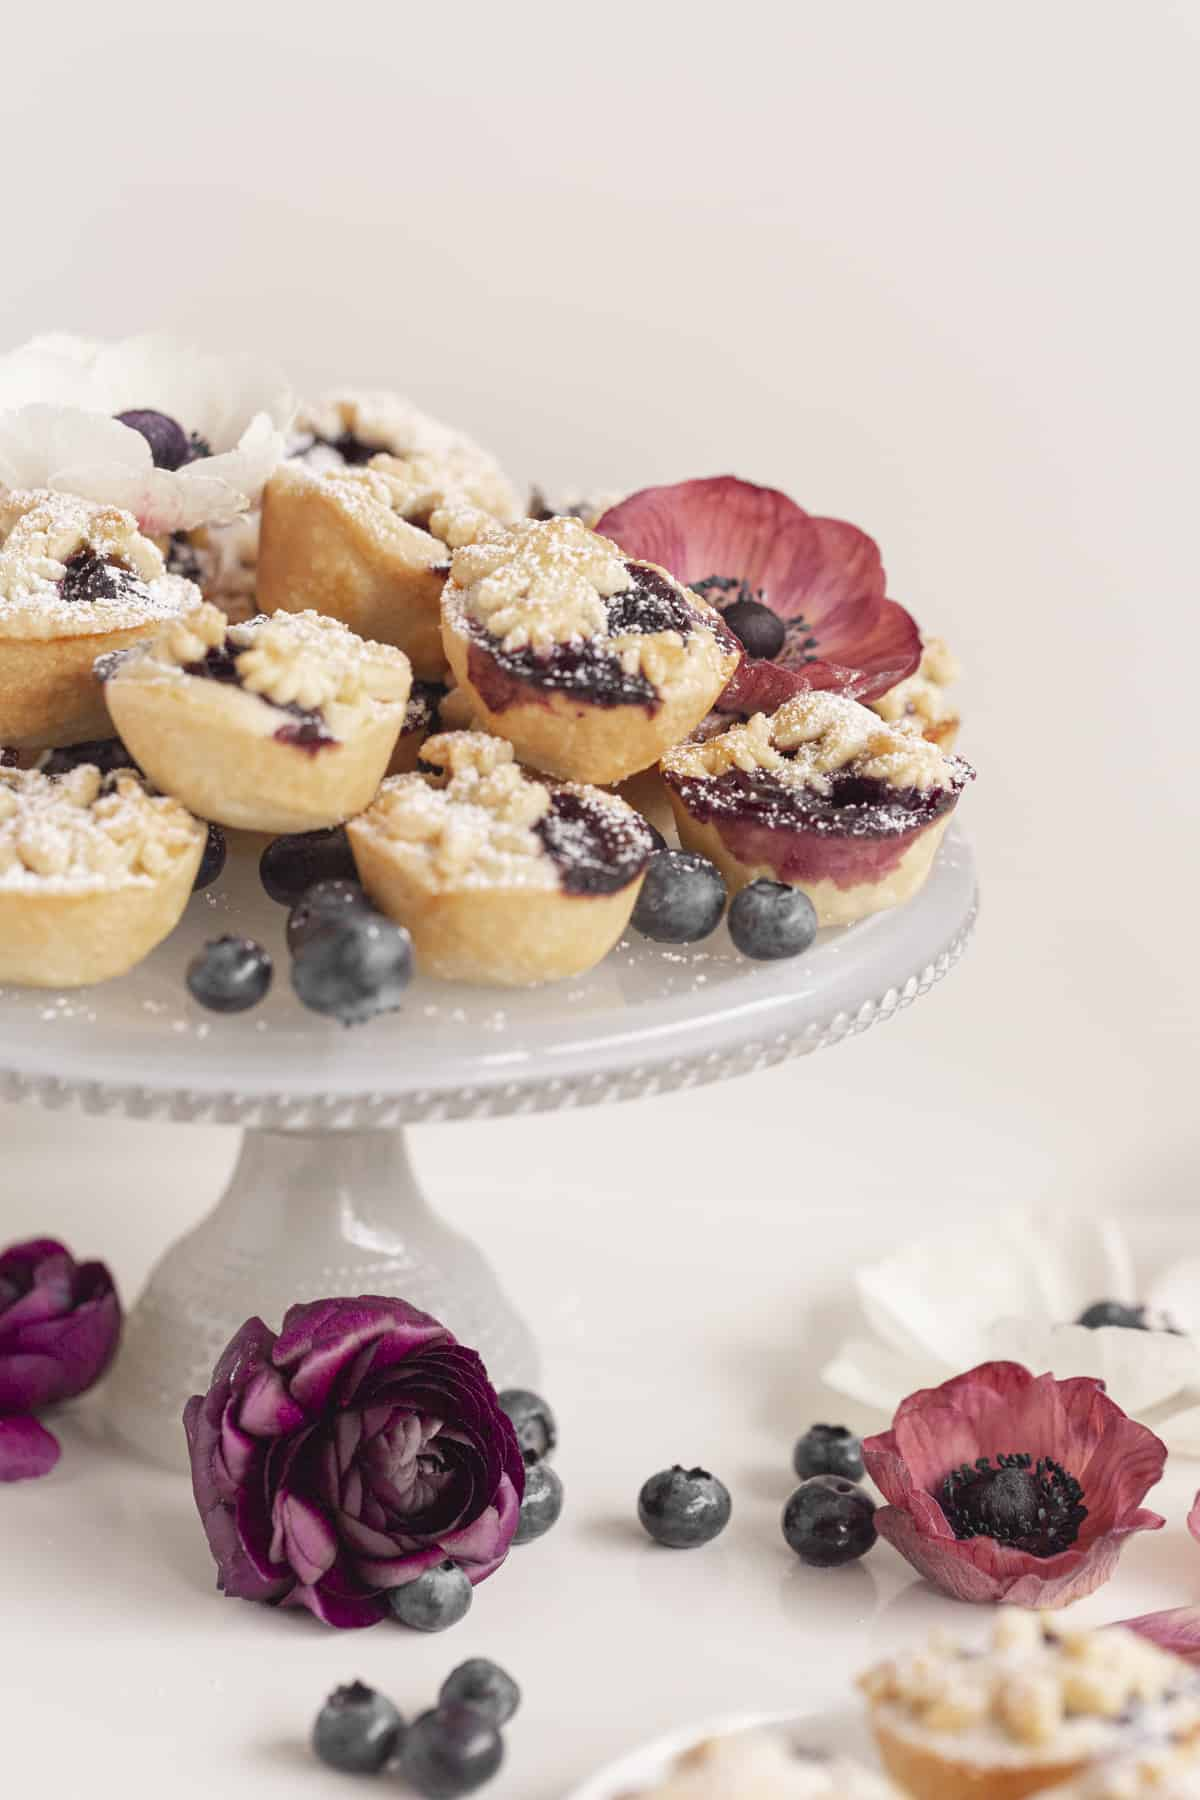 mini pies on a blue cake stand with flowers